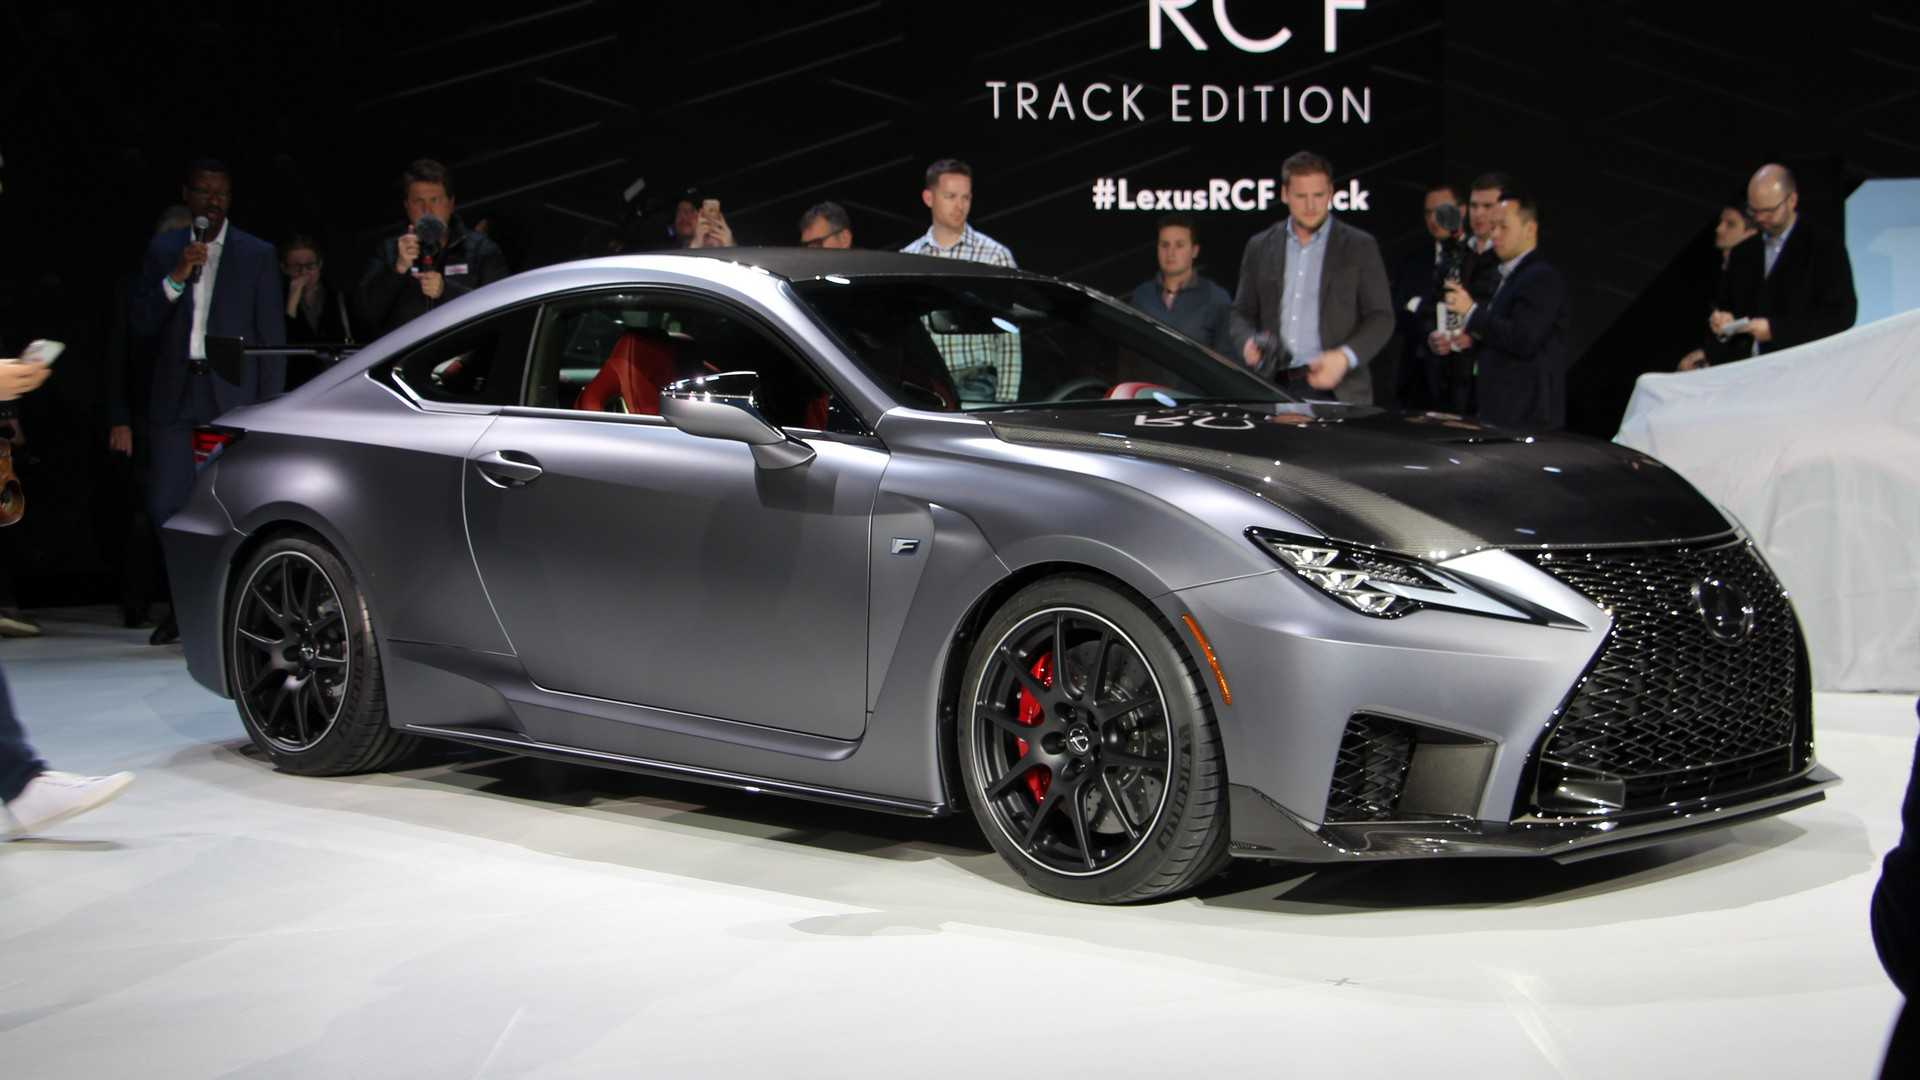 78 All New 2020 Lexus Rc F Track Edition Spesification by 2020 Lexus Rc F Track Edition